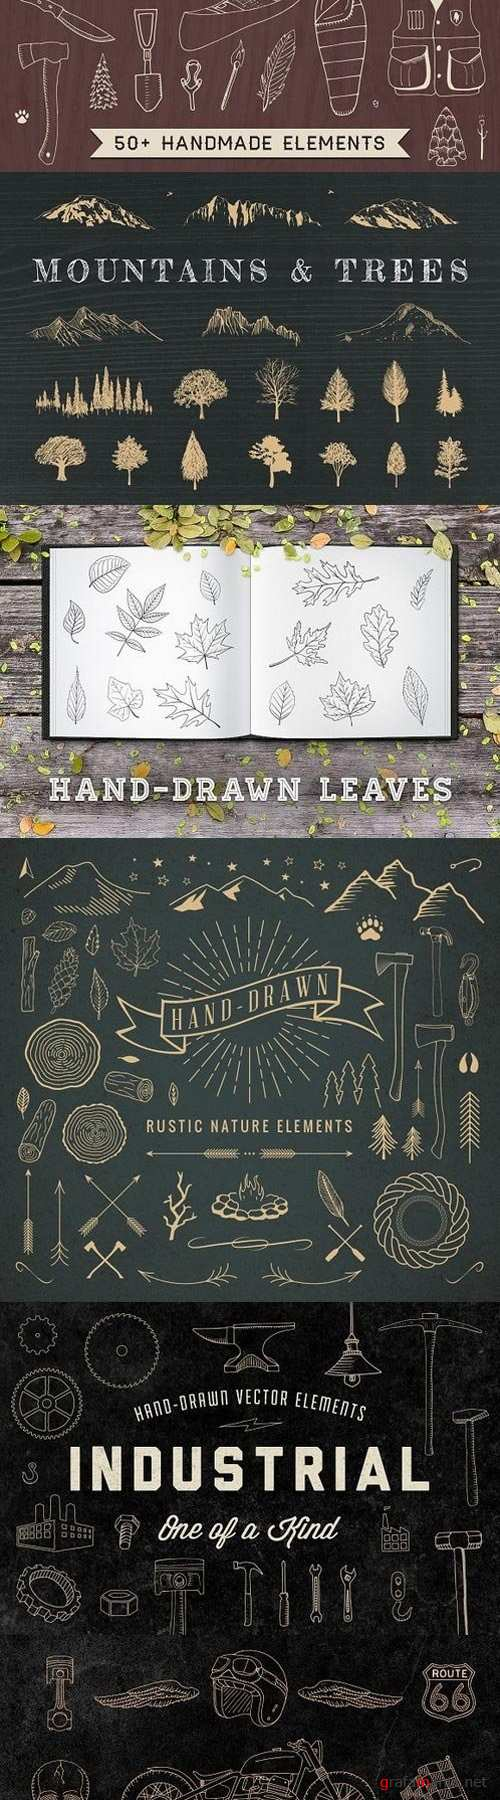 The Hand-Drawn Bundle 780851